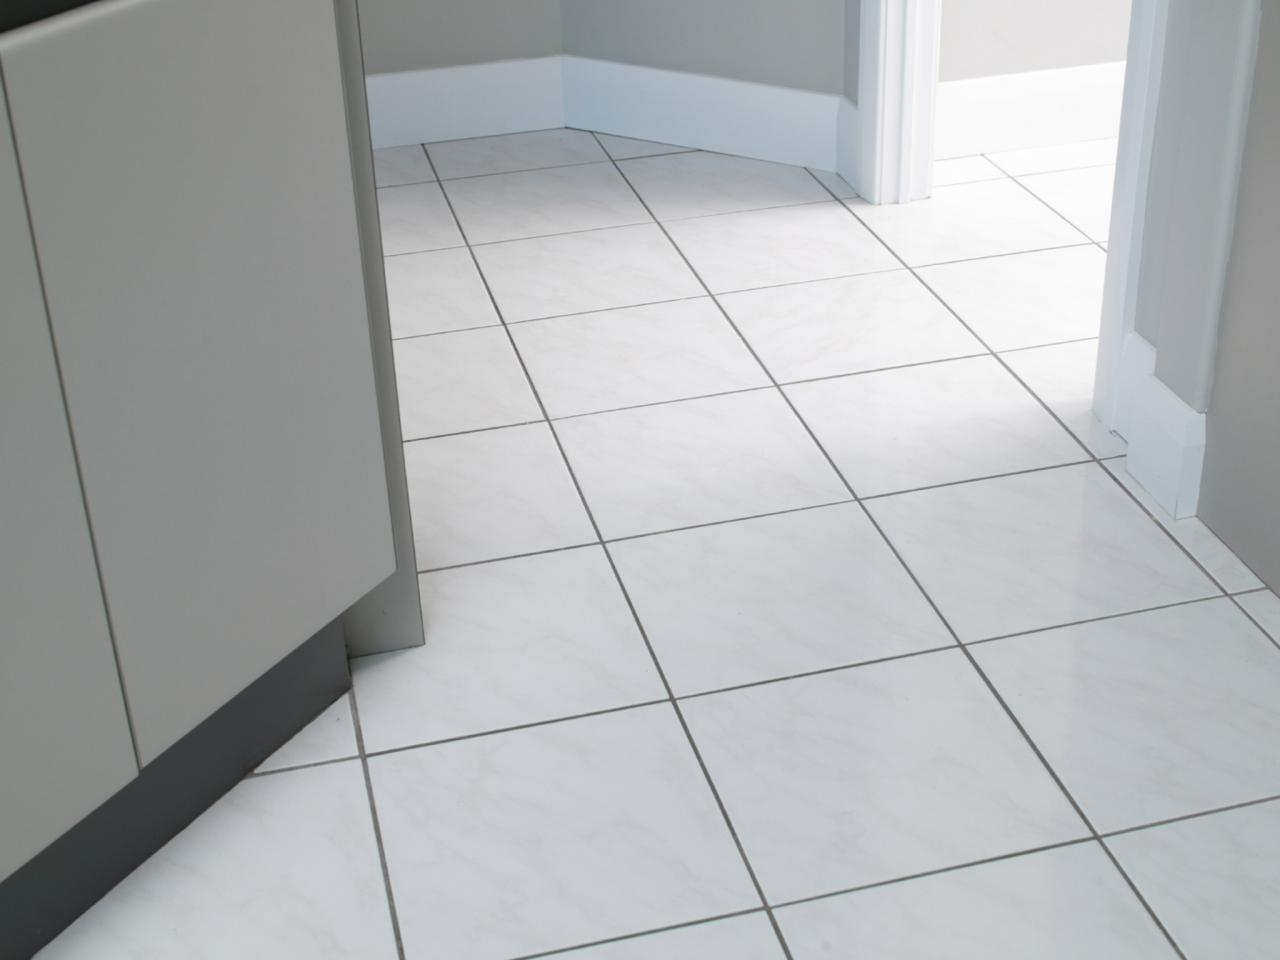 Ceramic tiles for bathroom floor